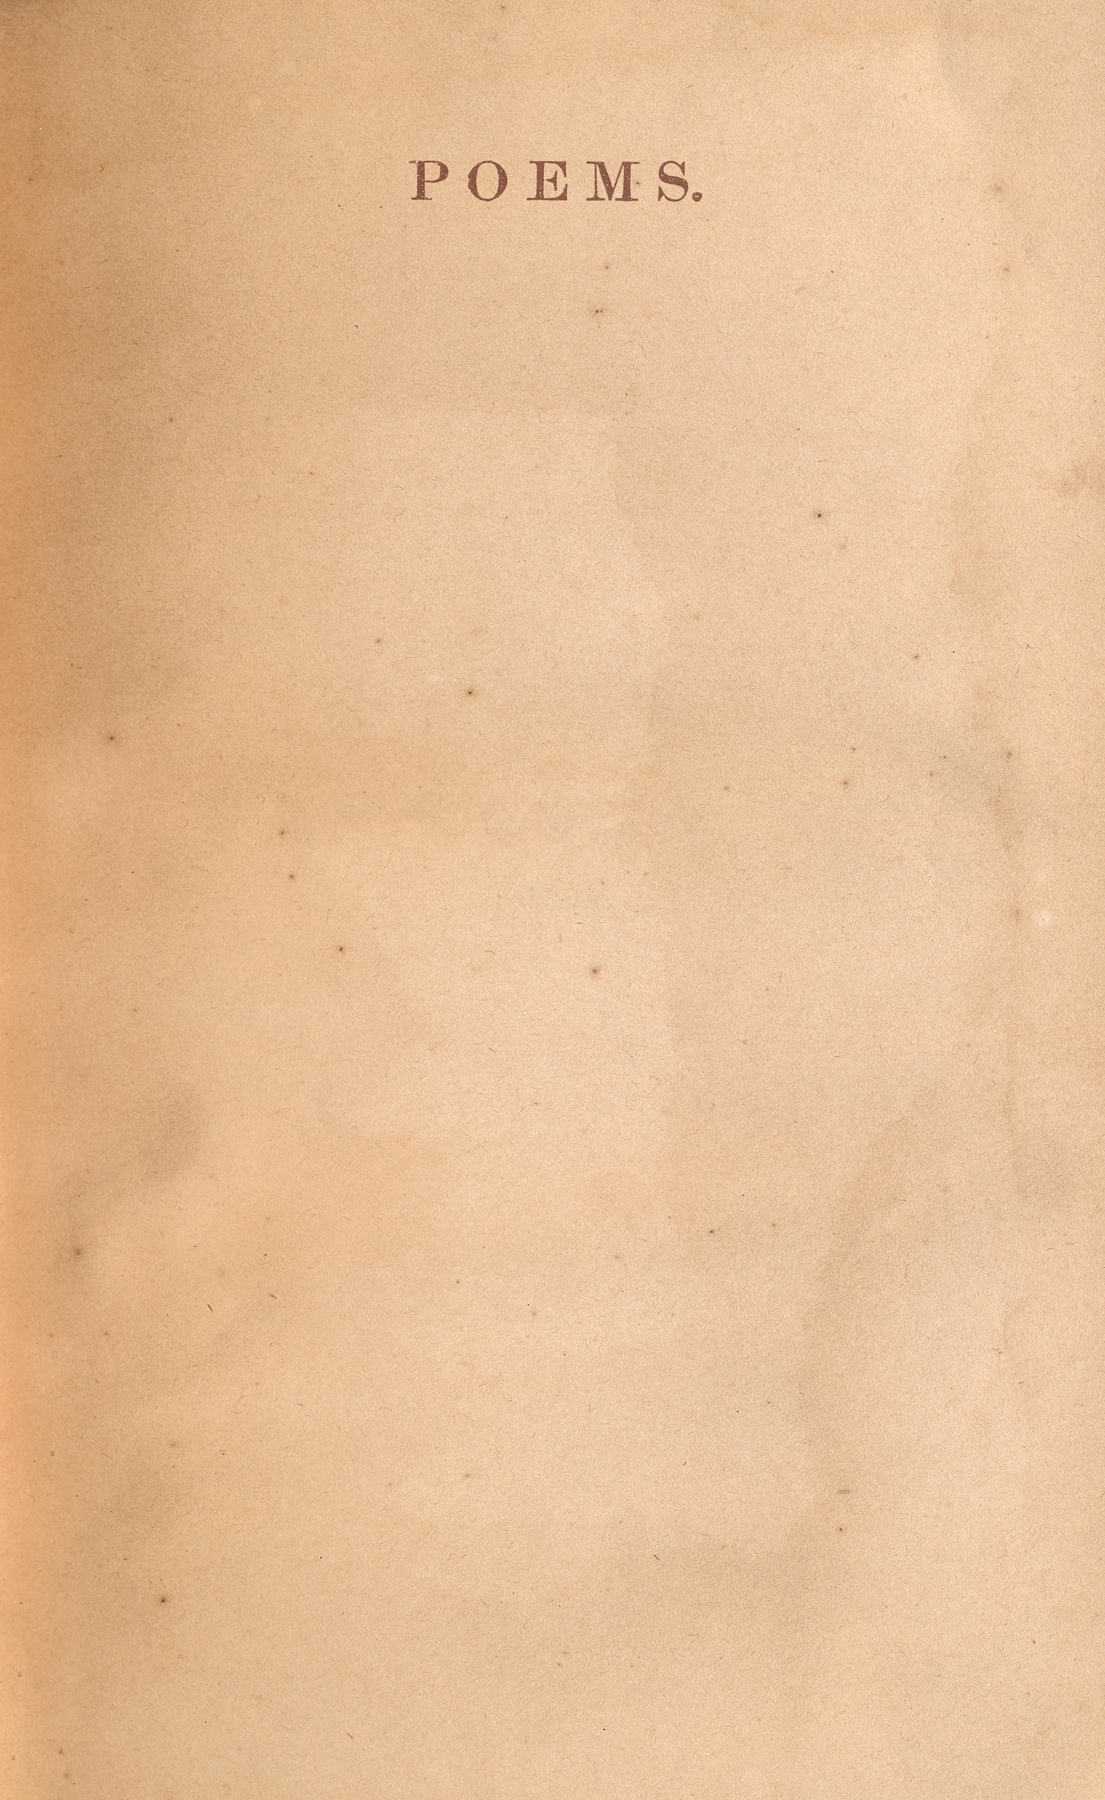 Antique Poems Paper Template, Age, Spot, Stains, Stained, HQ Photo